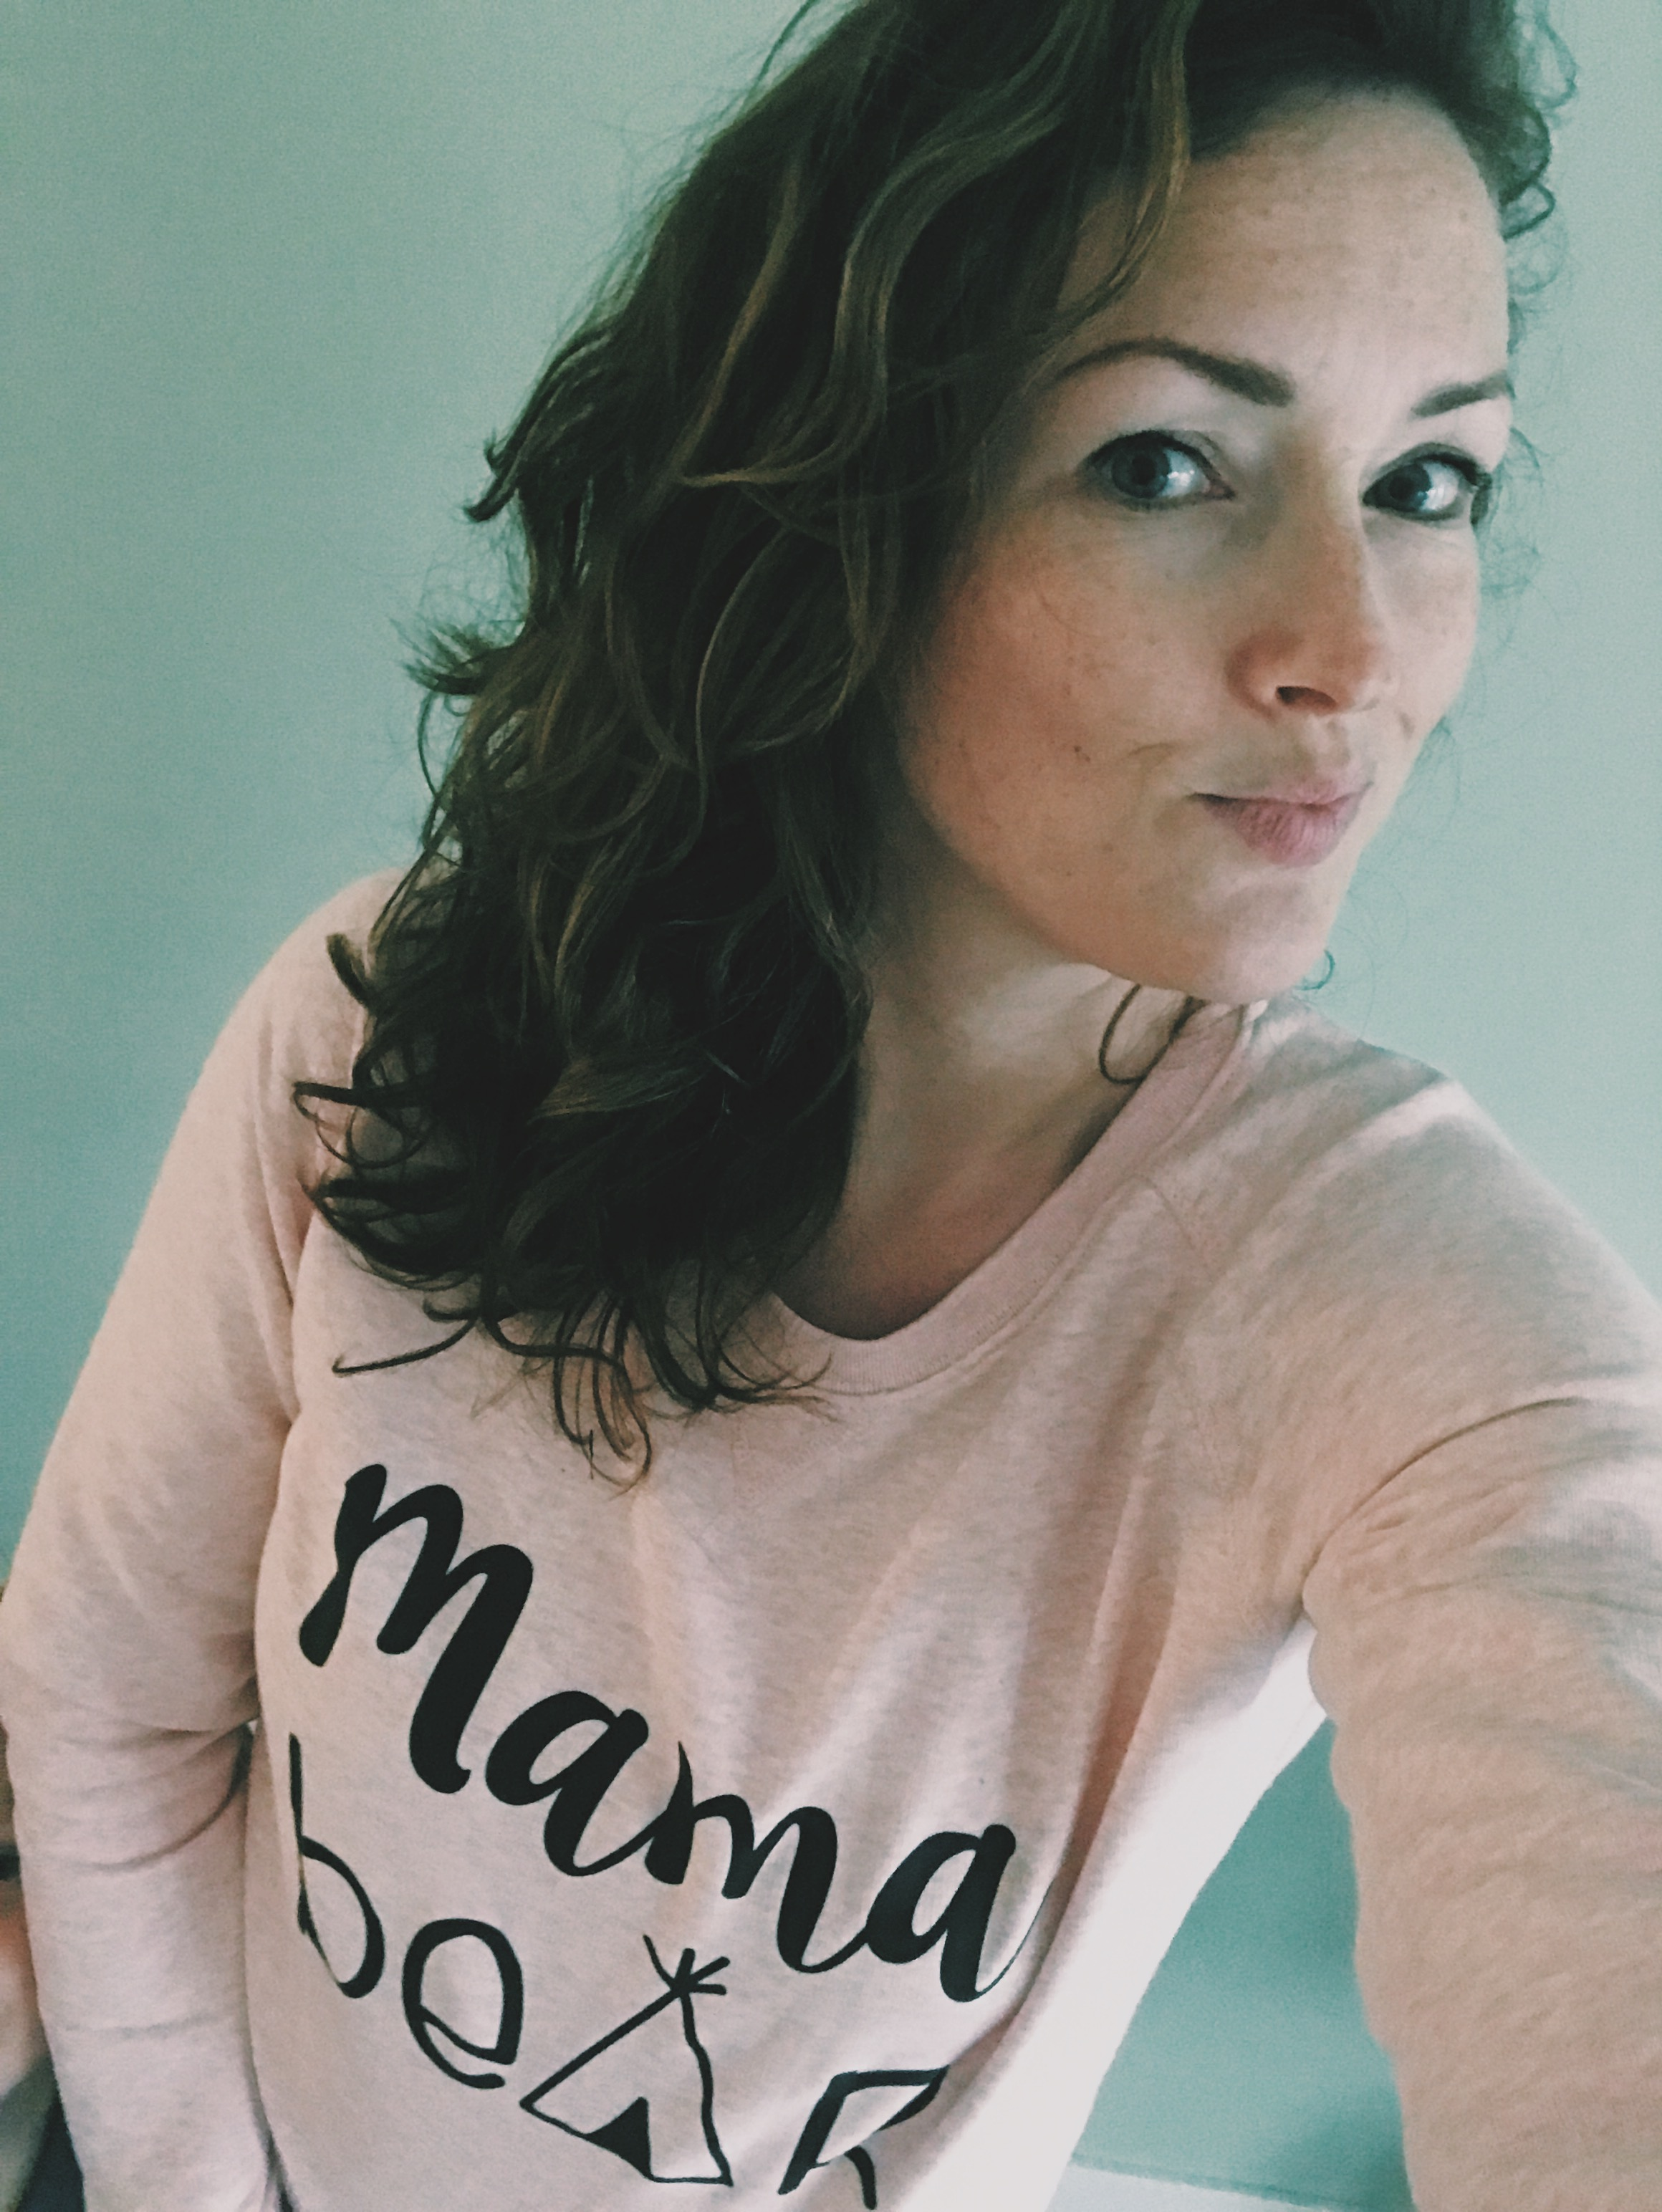 digitransfer shoppen online trui fashion mode mama mamabear mamablog mamablogger blog blogger lifestyle laviedemama.nl